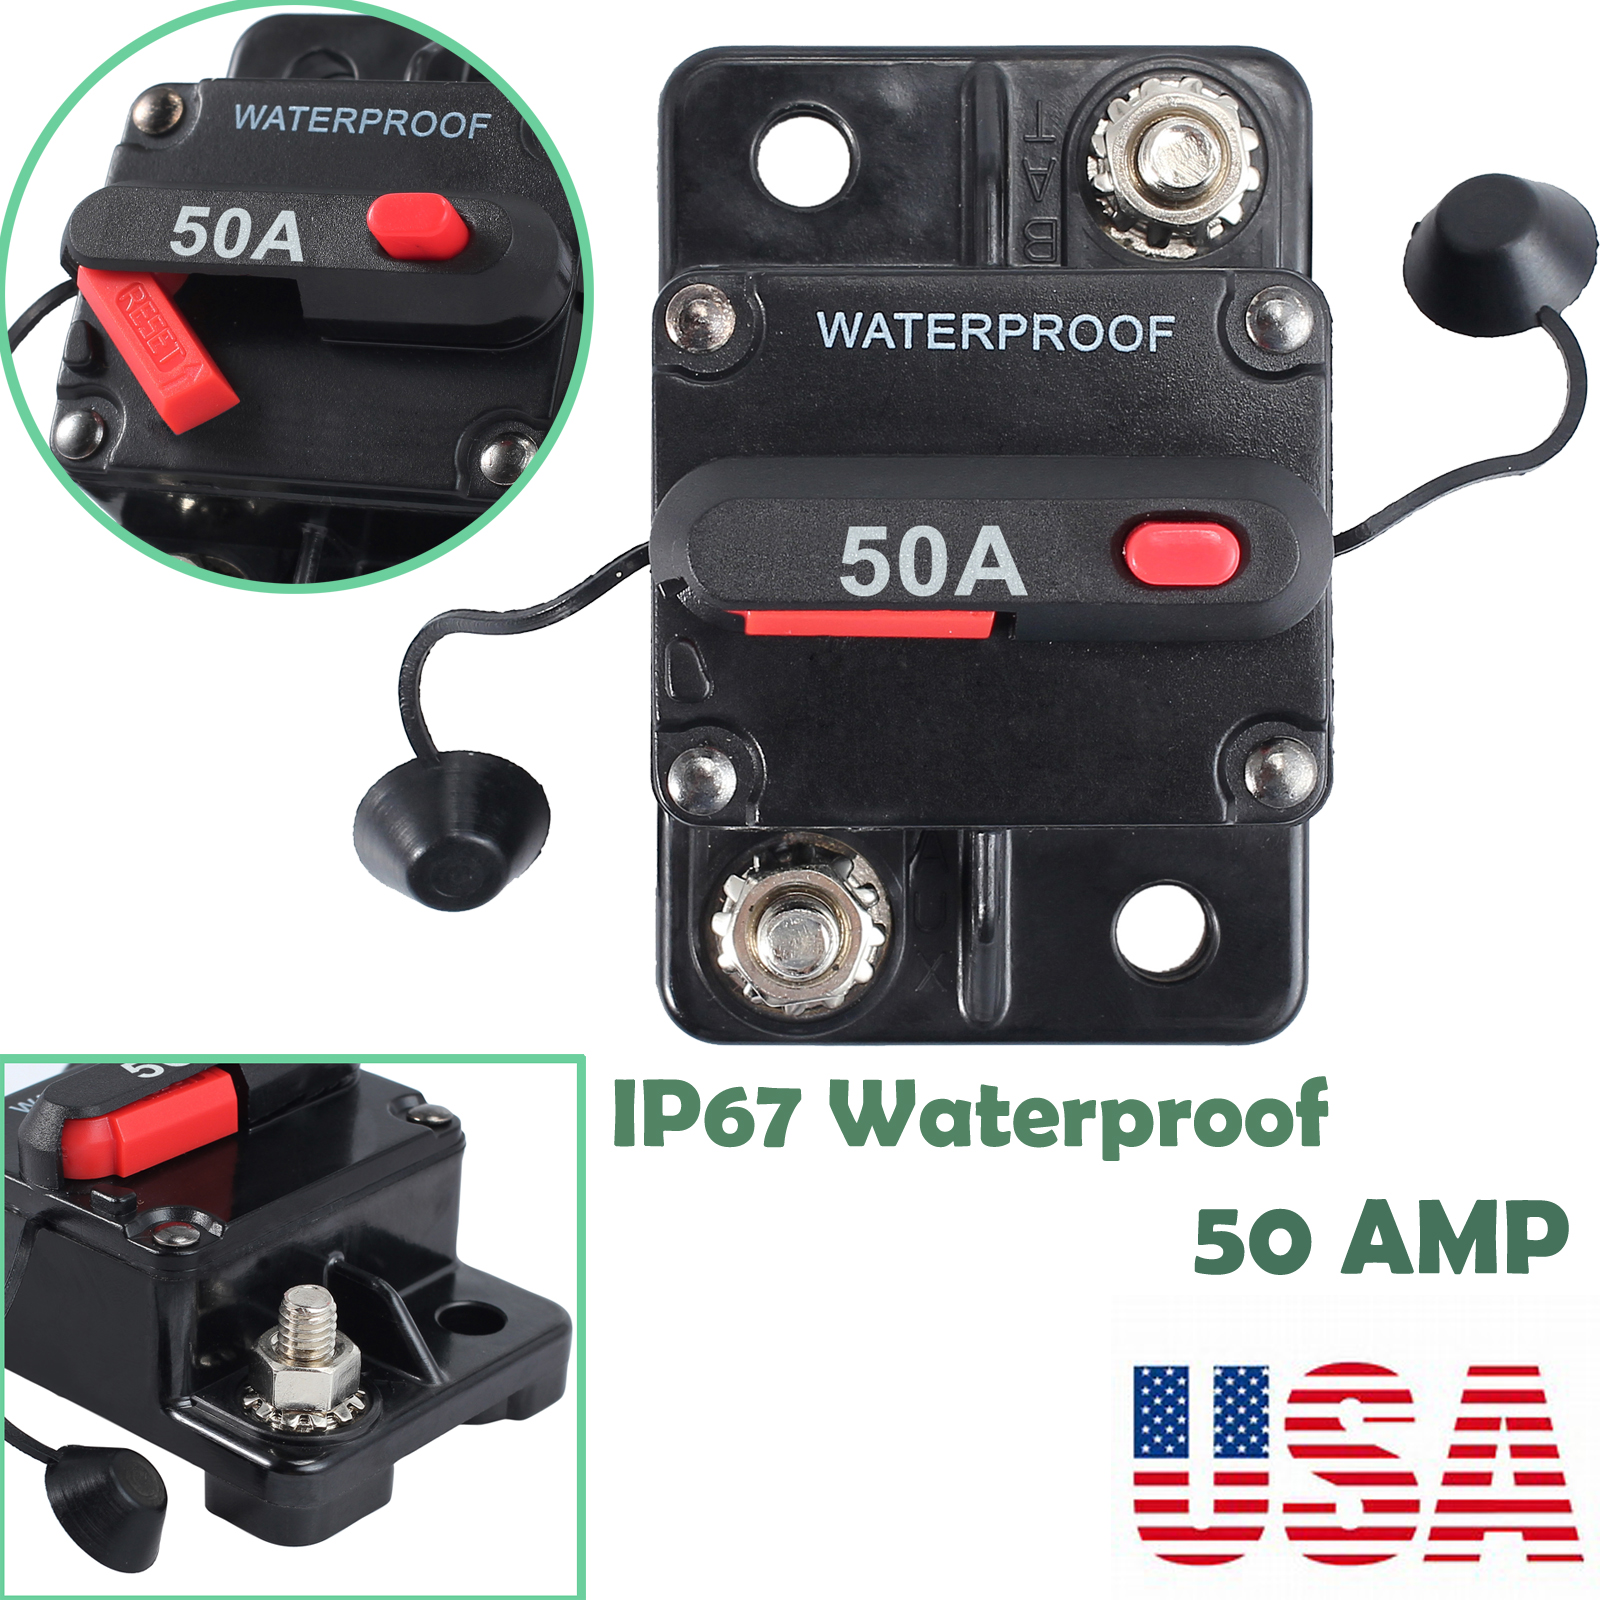 50a amp circuit breaker surface mount dual battery manual reset sae rh ebay com SAE J1171 Marine Trim SAE J1171 Marine Trim